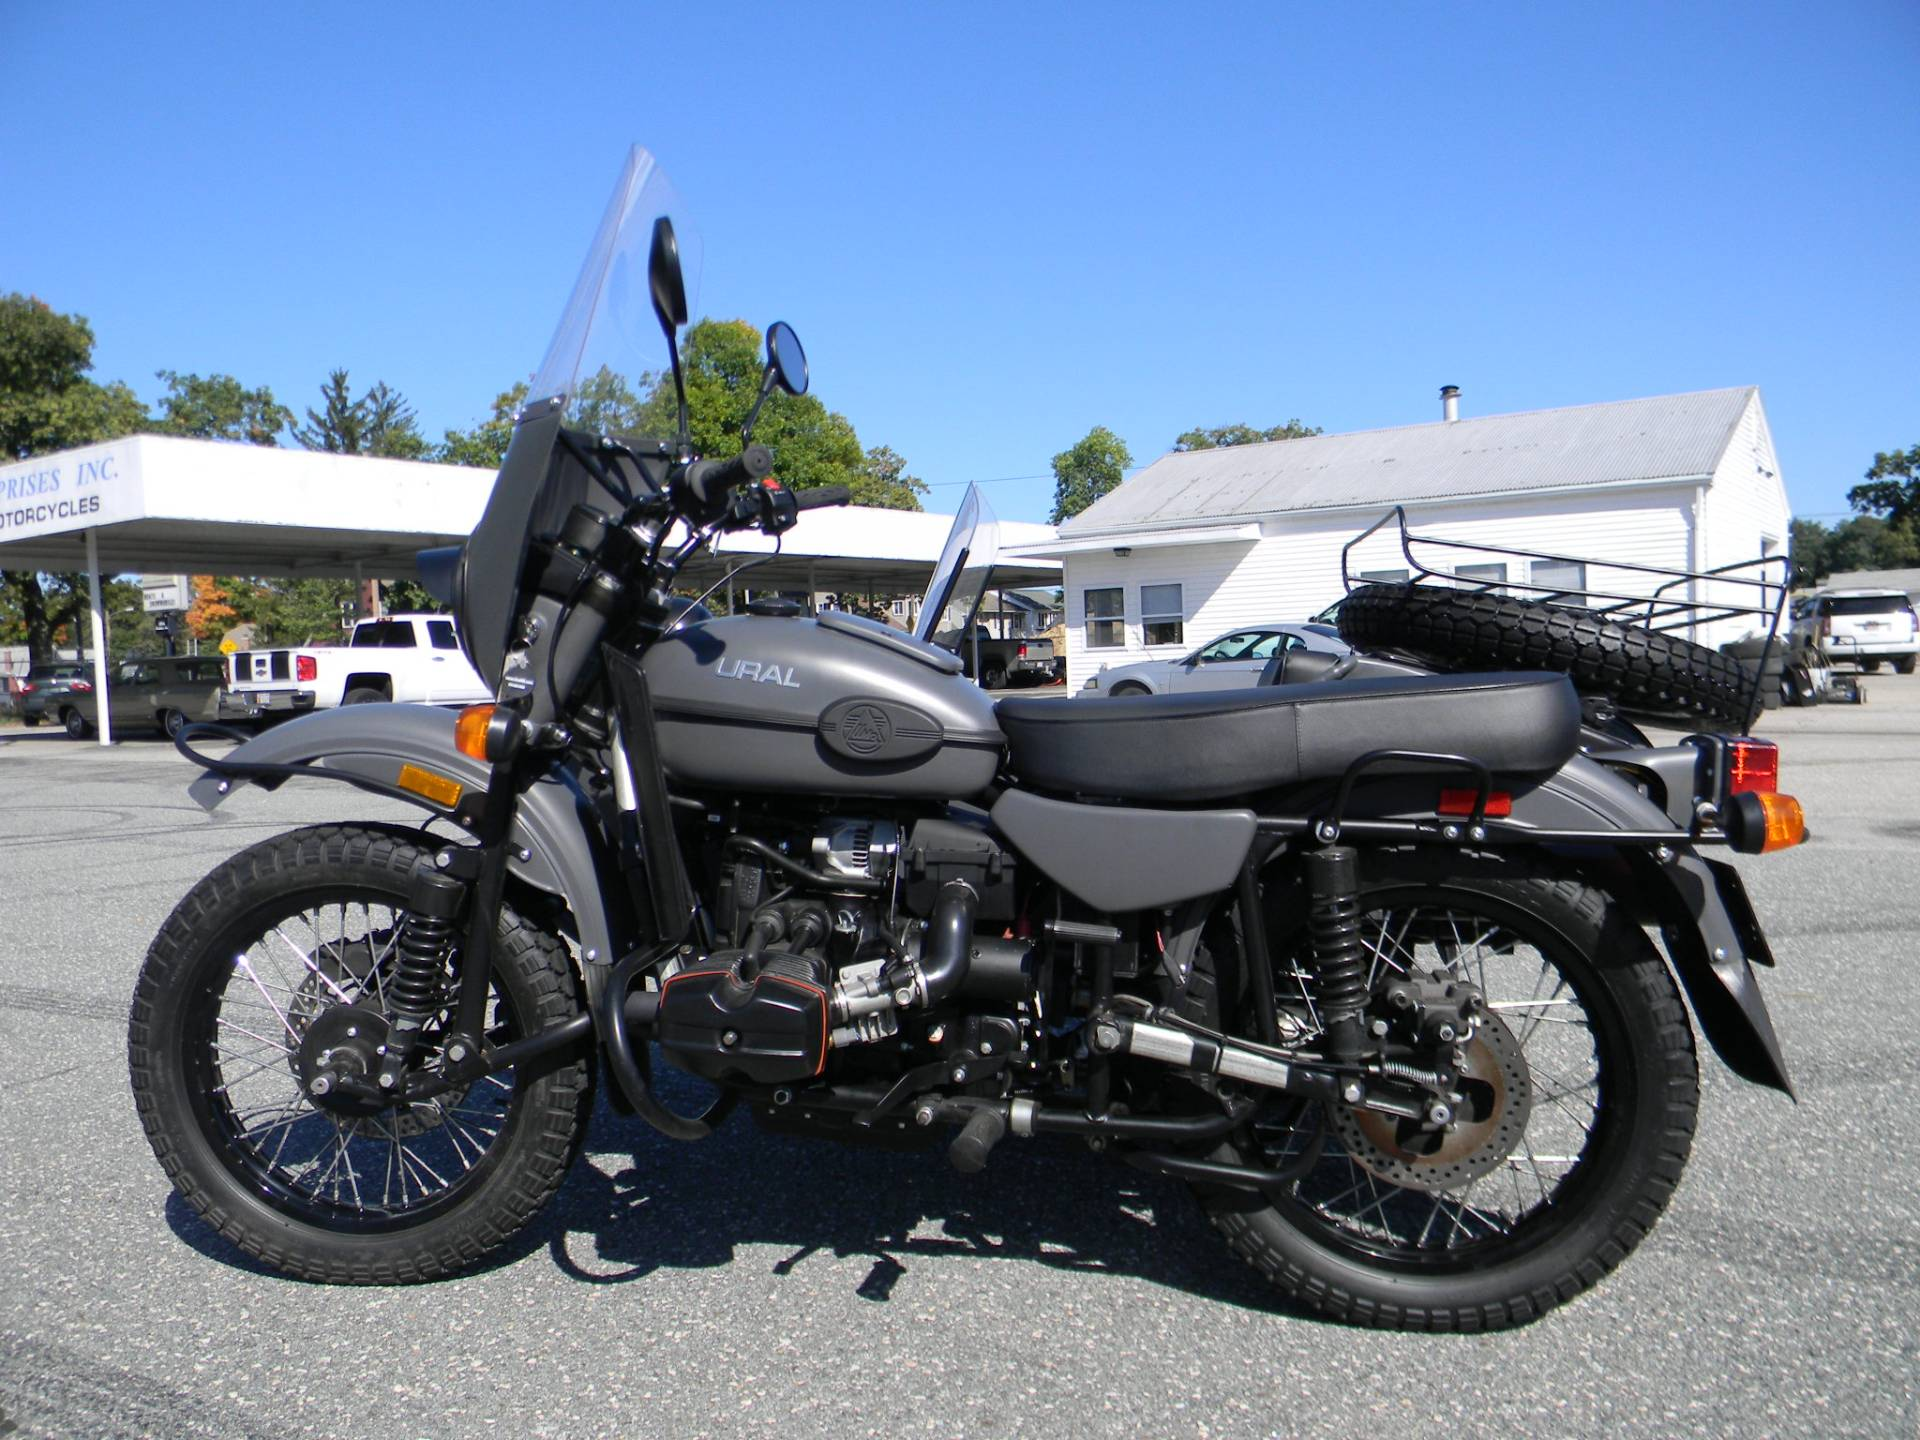 2014 Ural Motorcycles Gear-Up in Springfield, Massachusetts - Photo 7